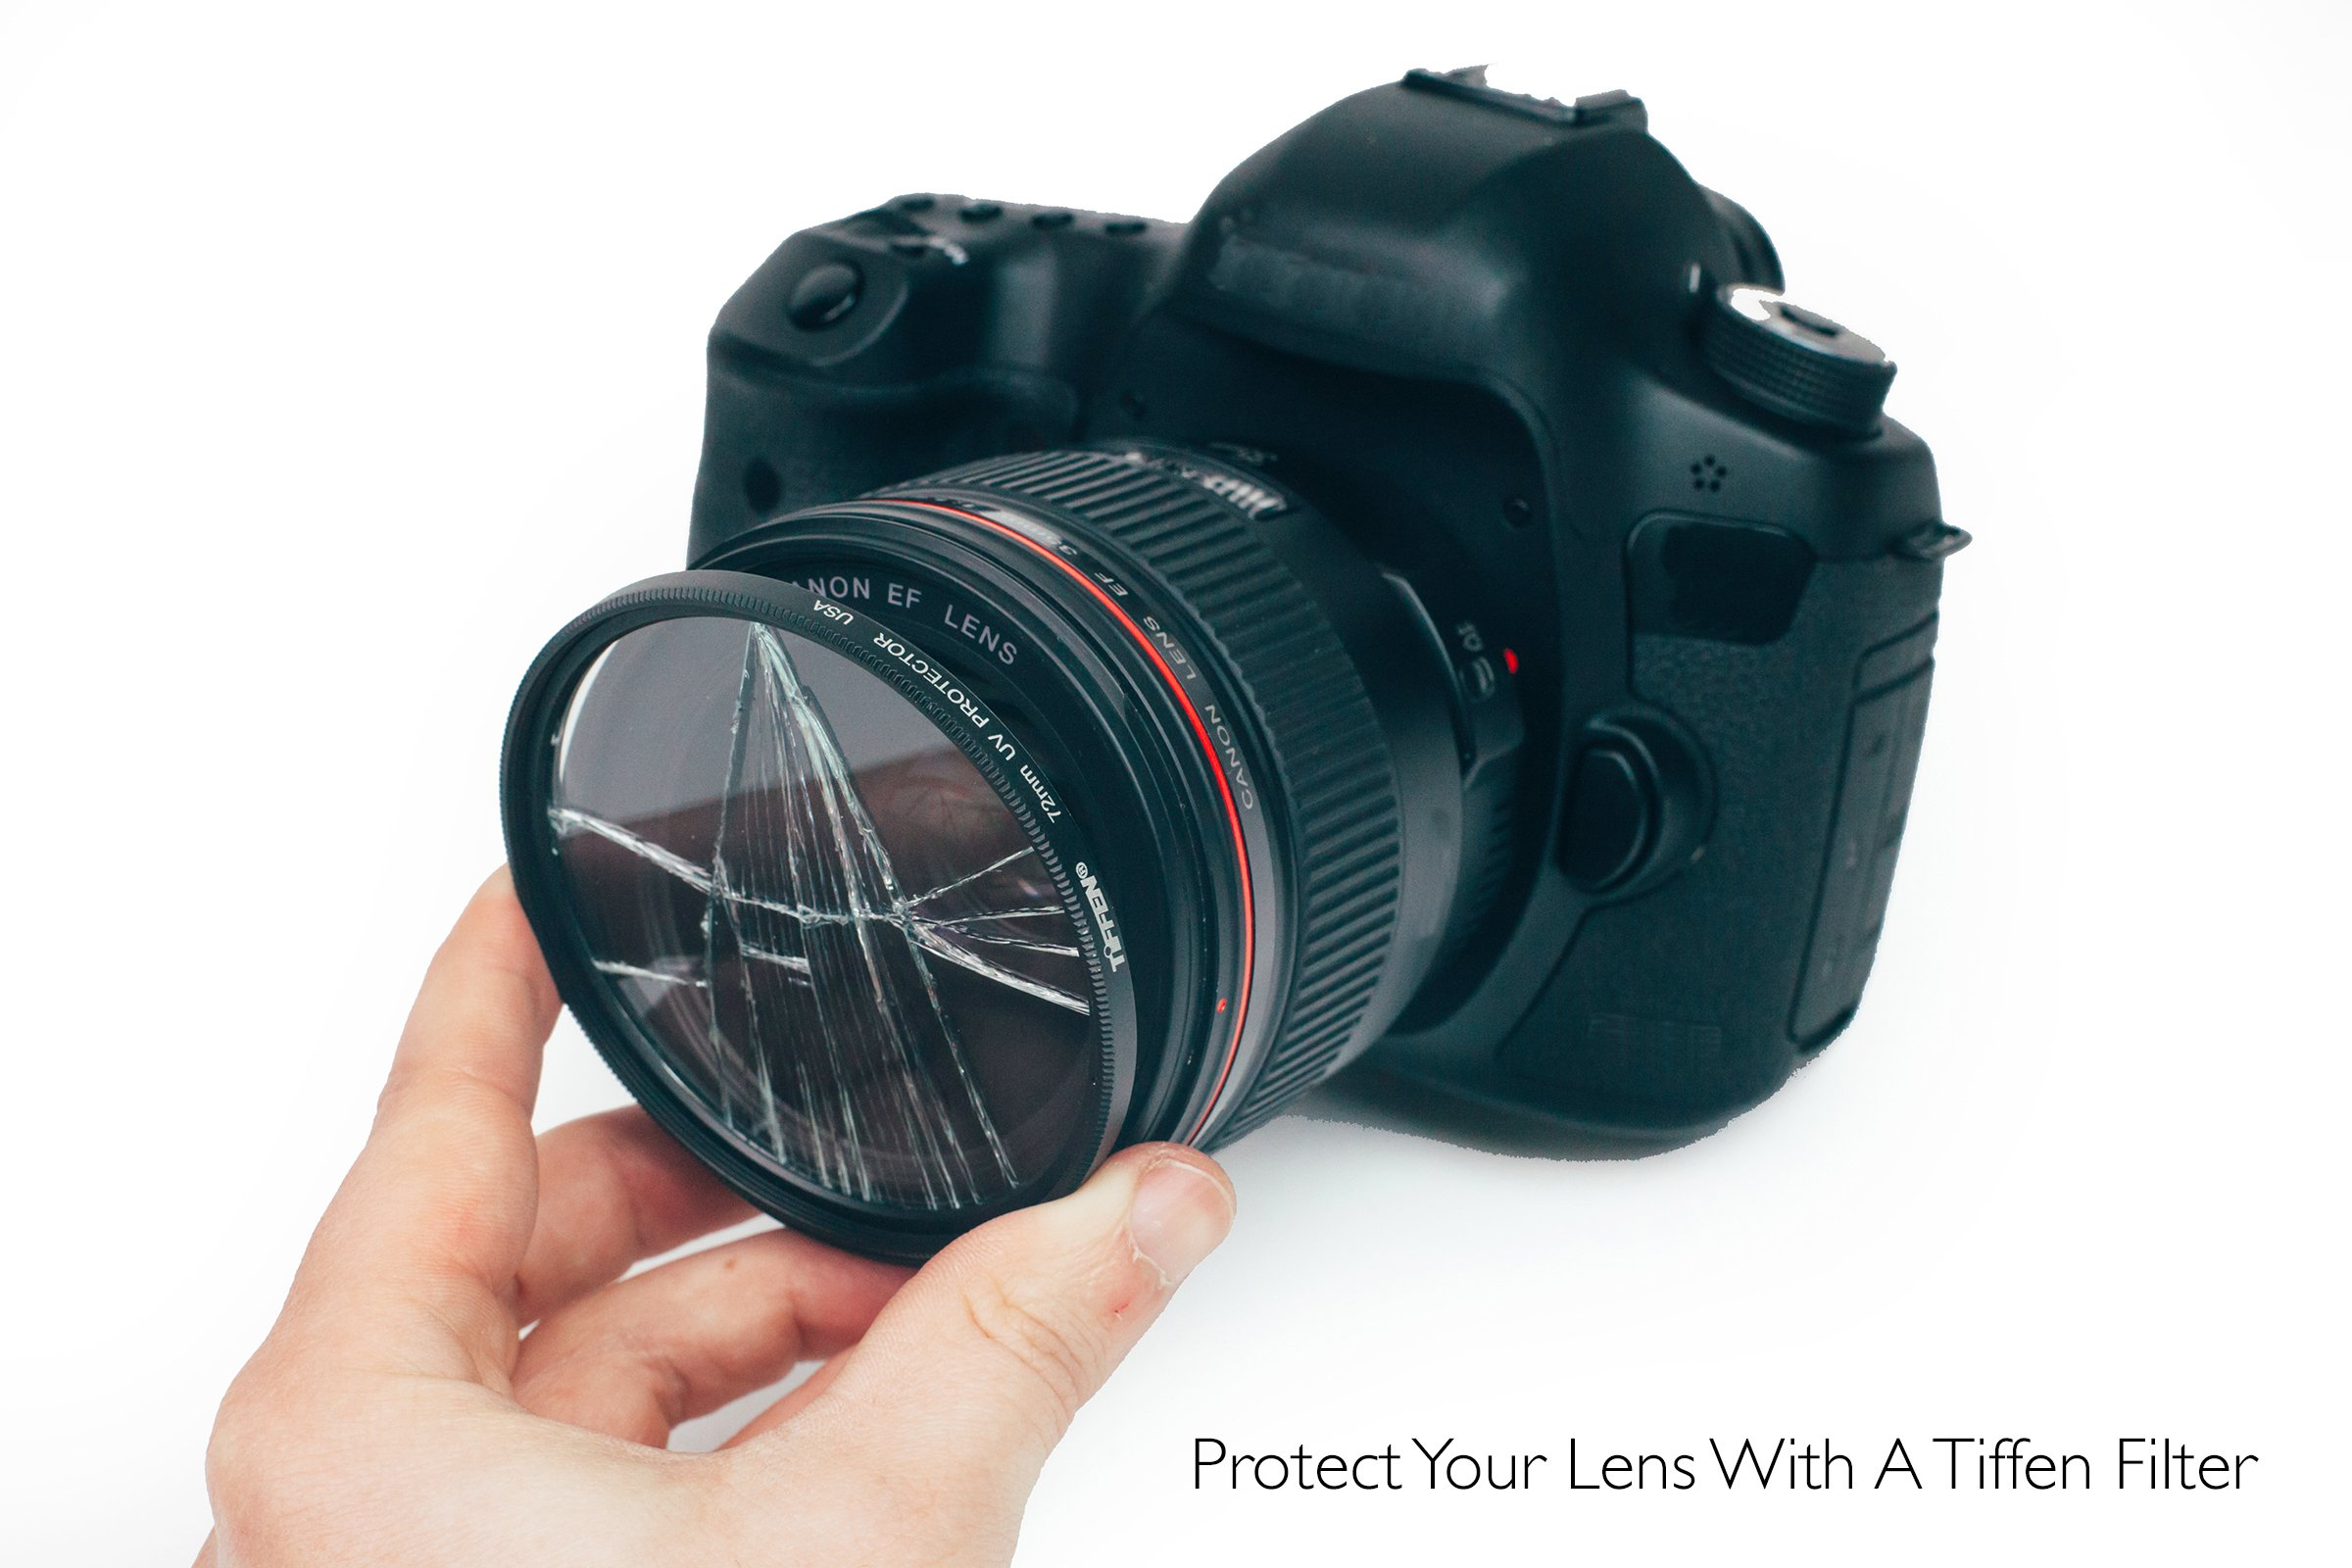 Tiffen 77mm UV Protection Filter by Tiffen